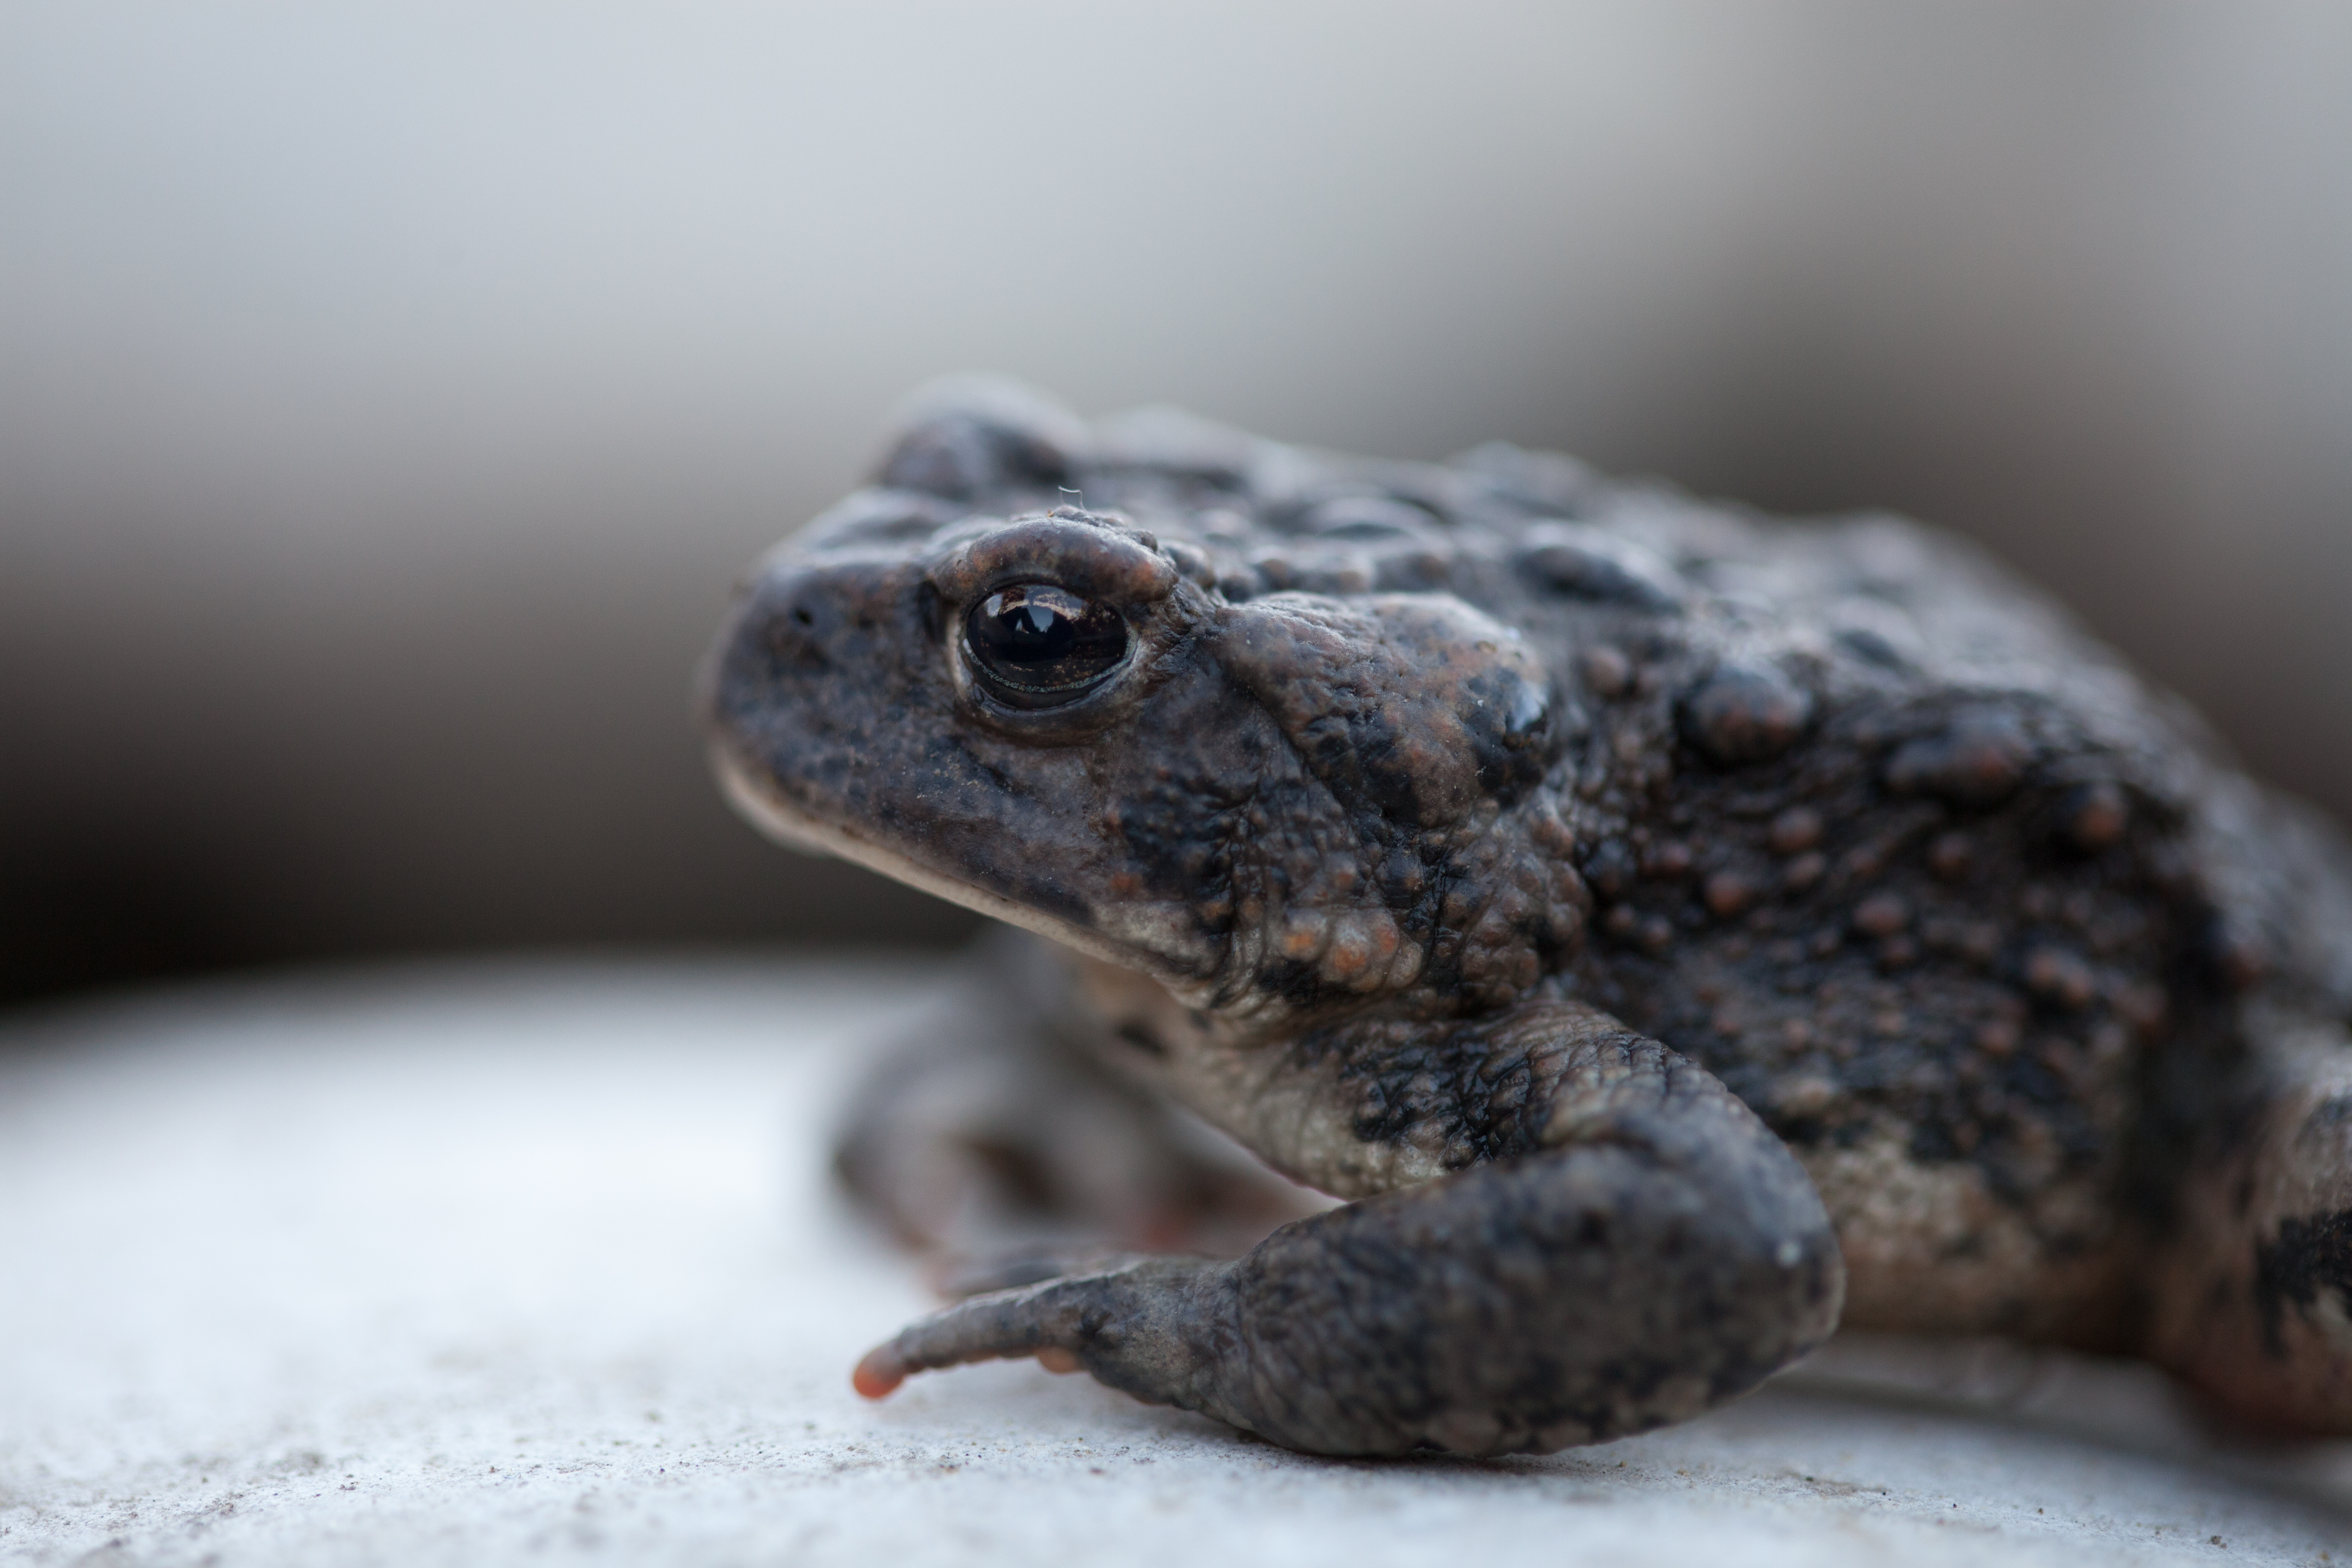 Species account boreal toad 6653 ft boreal toad october 26 2013 sciox Choice Image